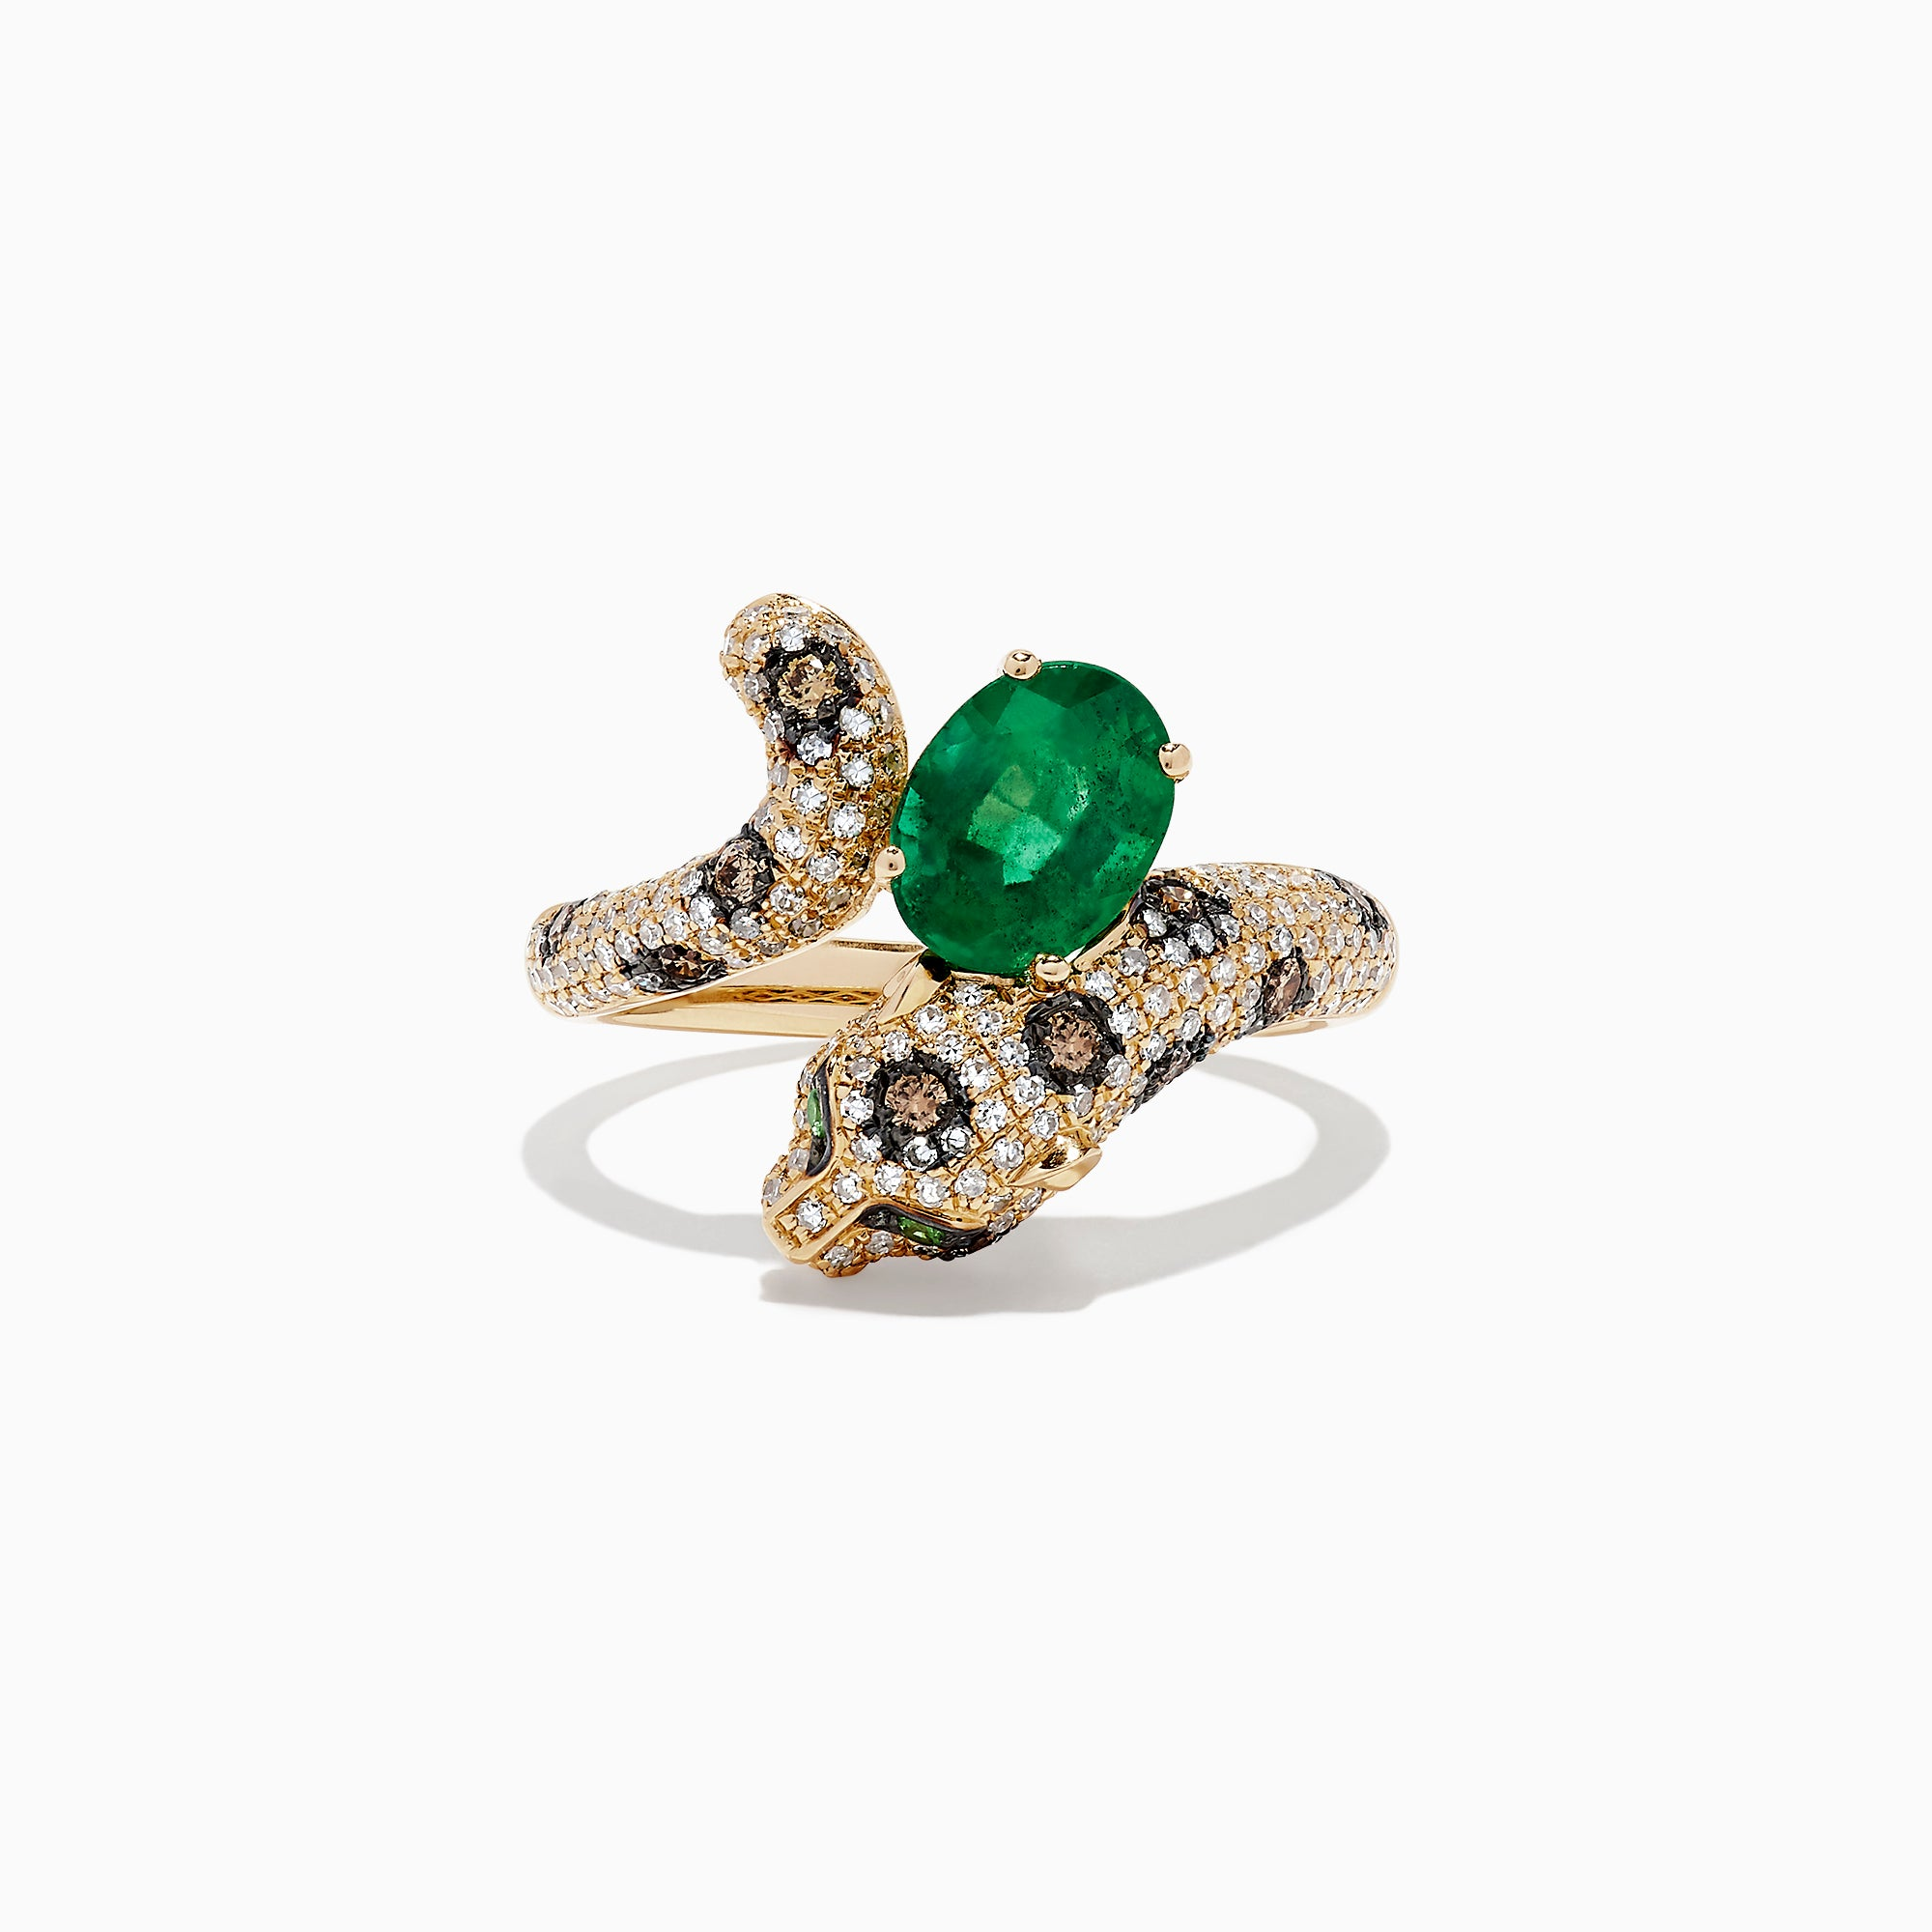 Effy Signature 14K Yellow Gold Diamond and Emerald Ring, 1.94 TCW